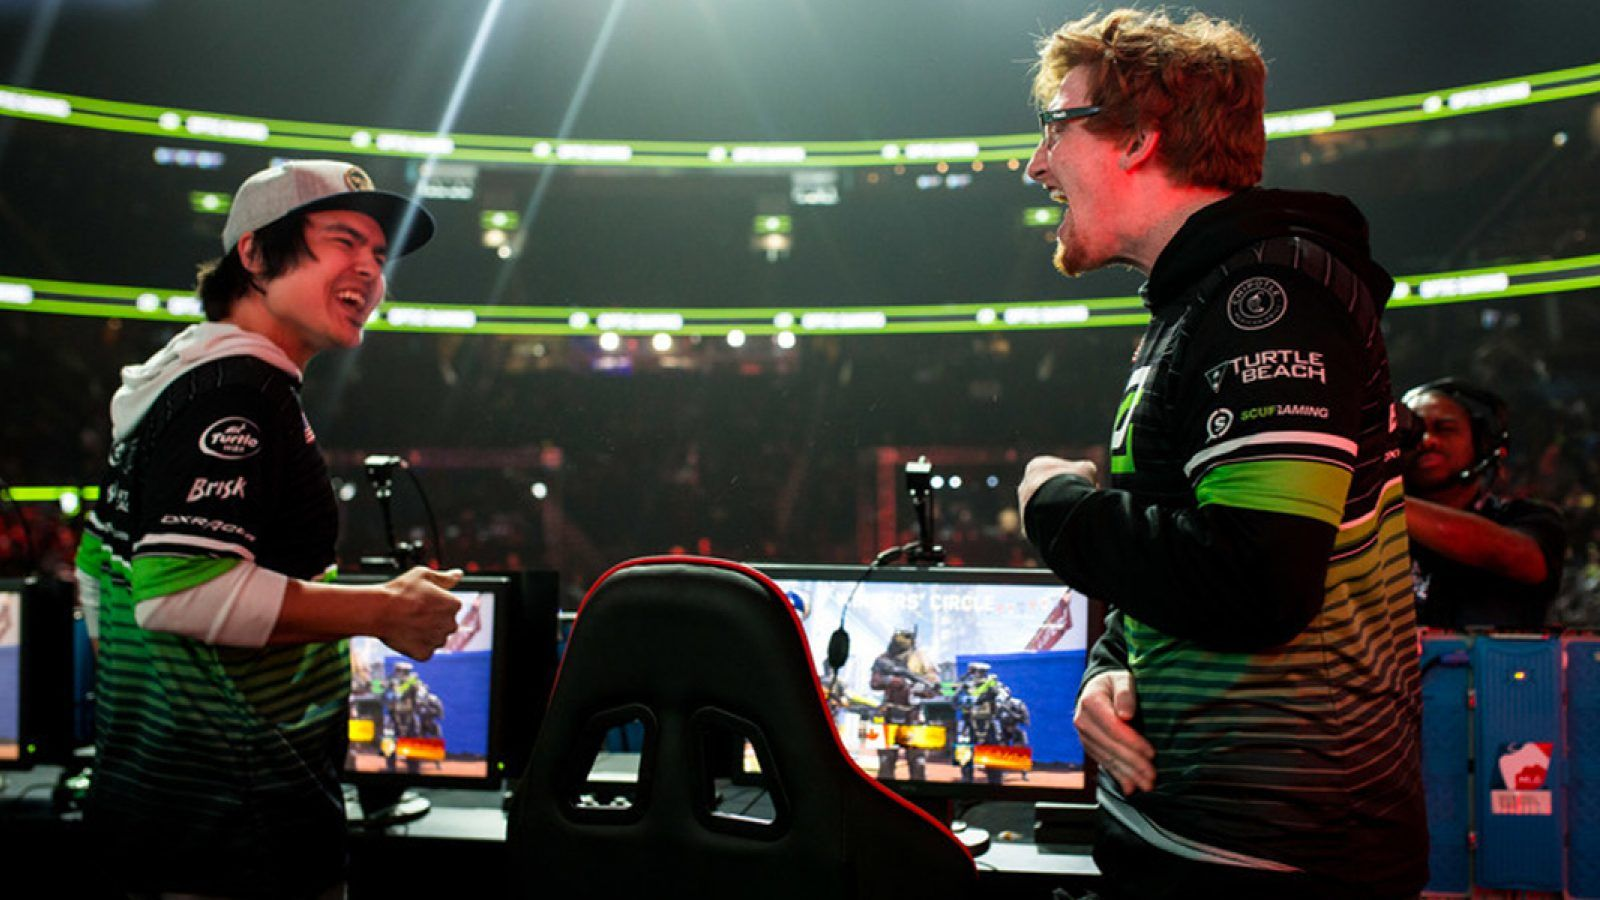 T2P Call of Duty duo Scump and Formal